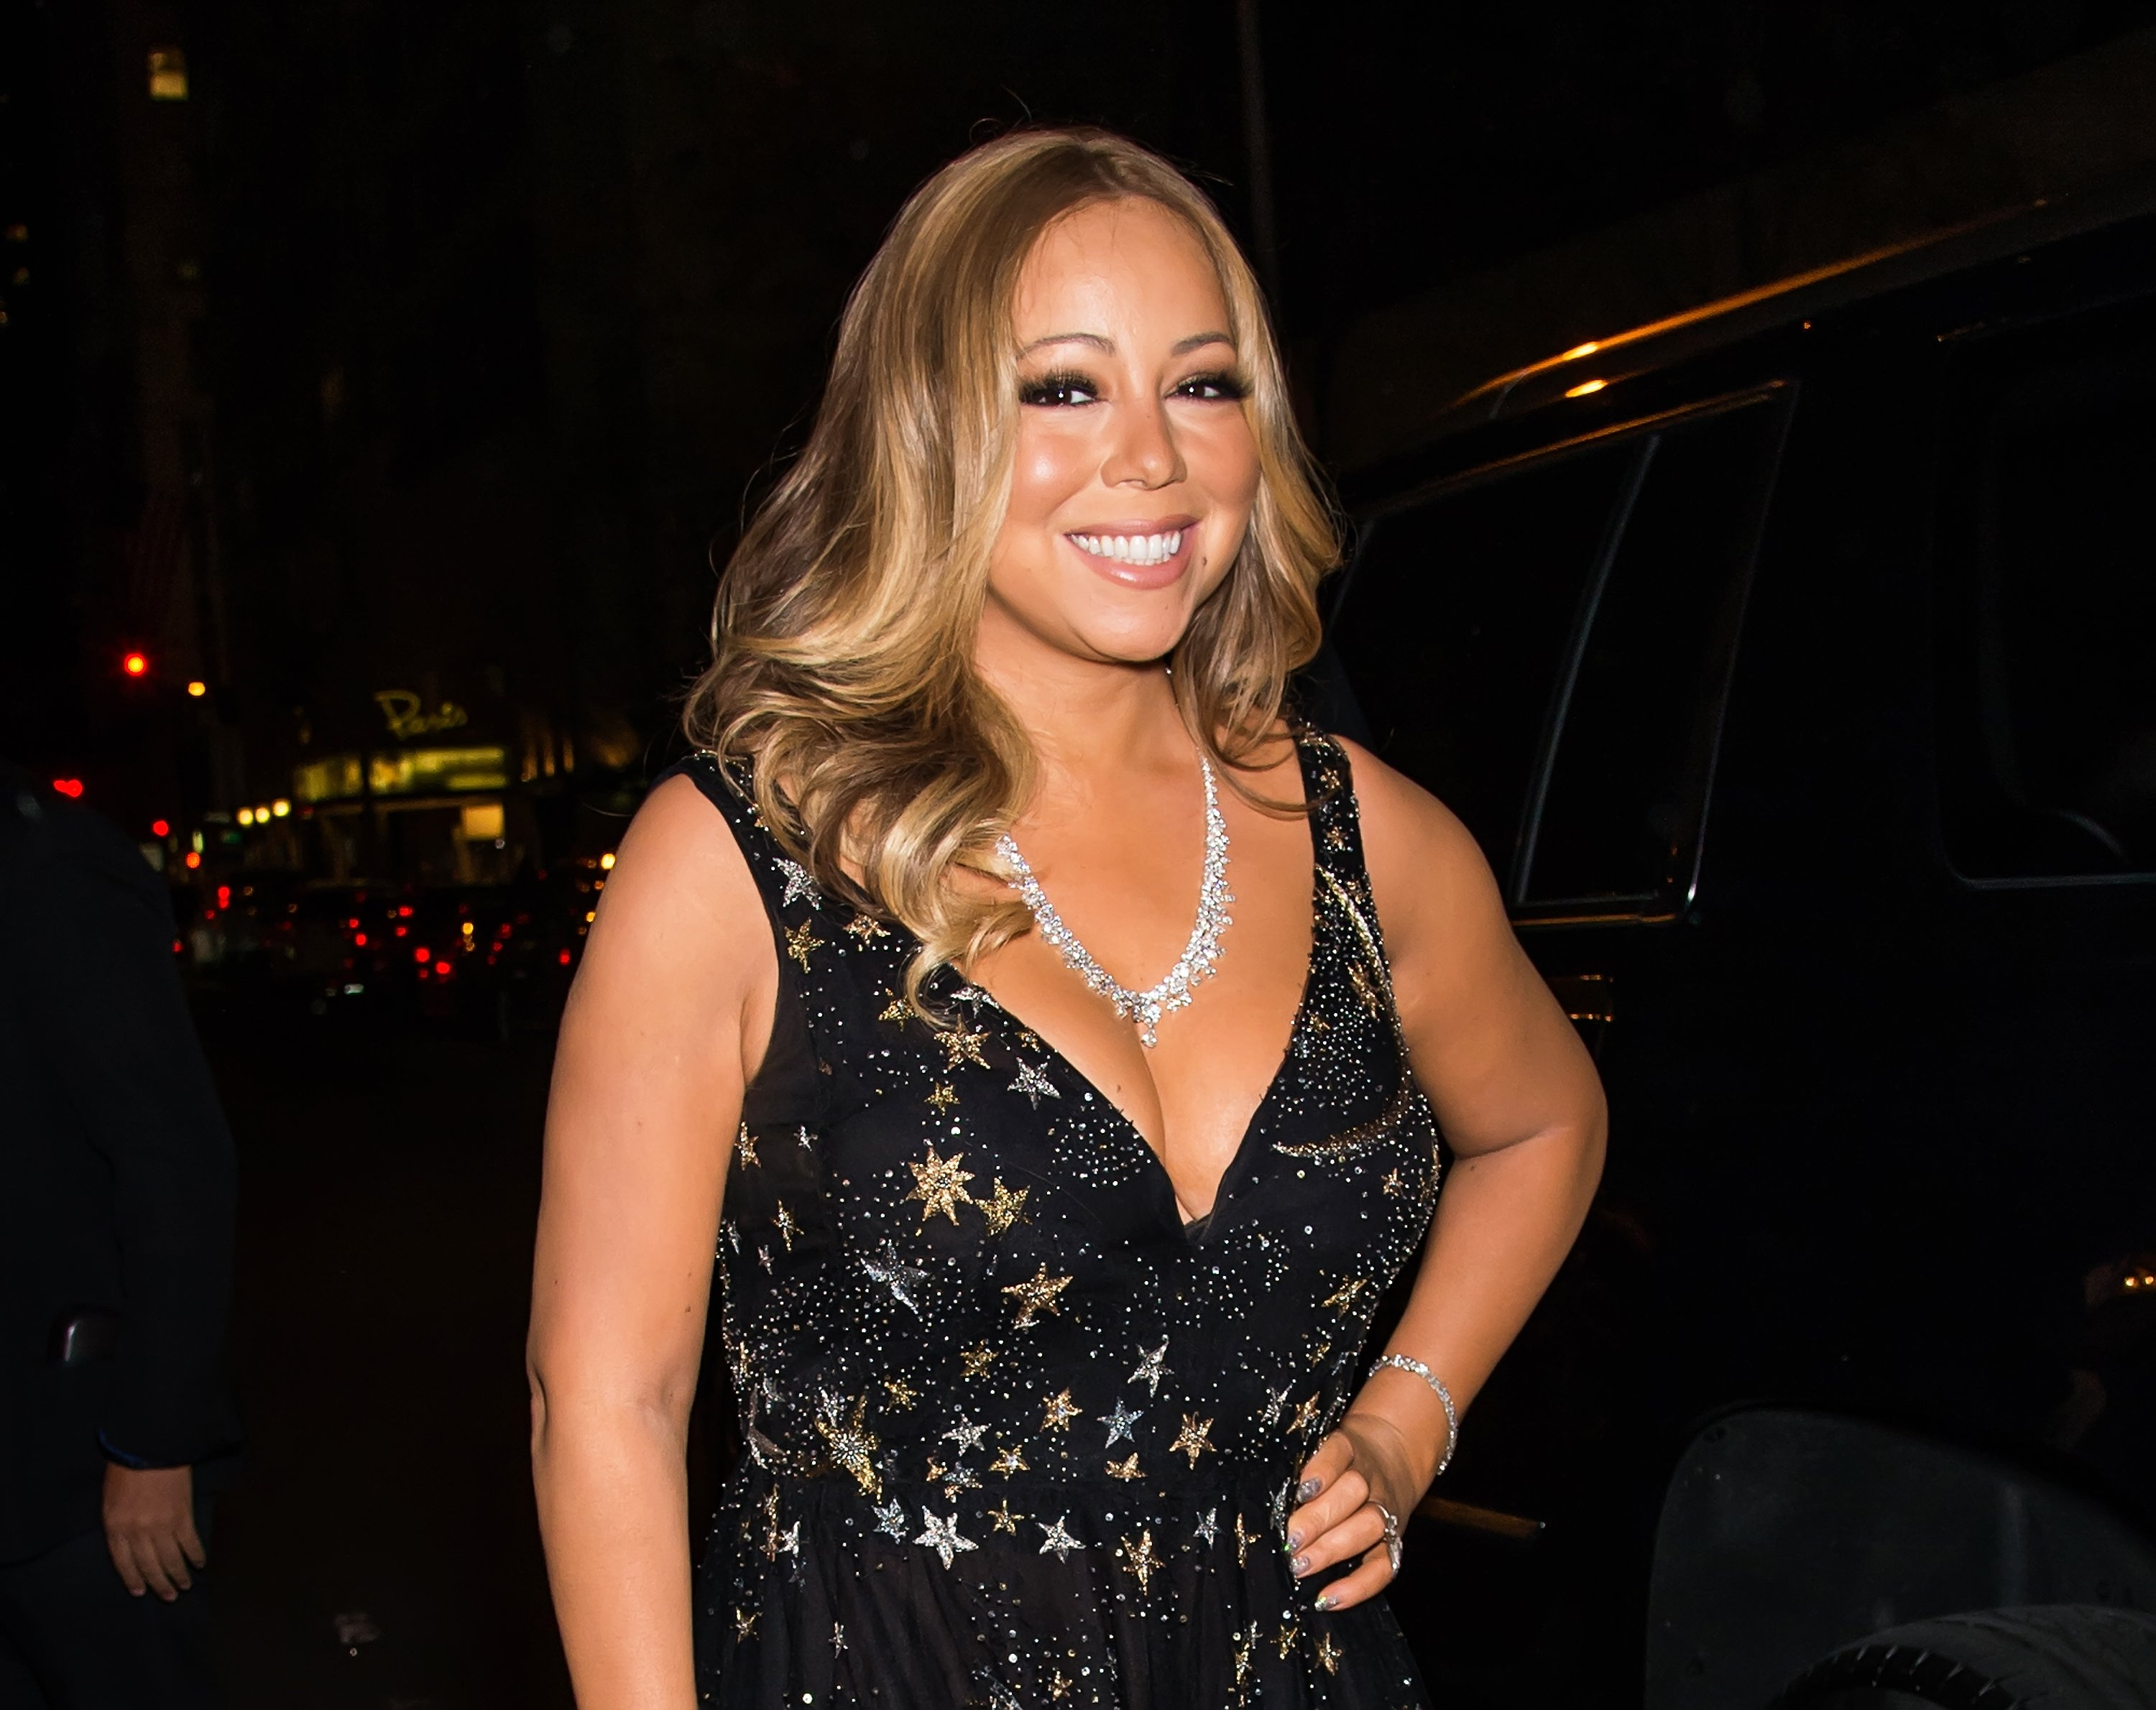 Mariah Carey attends 2015 Harper's BAZAAR ICONS Event at The Plaza Hotel on September 16, 2015, in New York City. | Source: Getty Images.